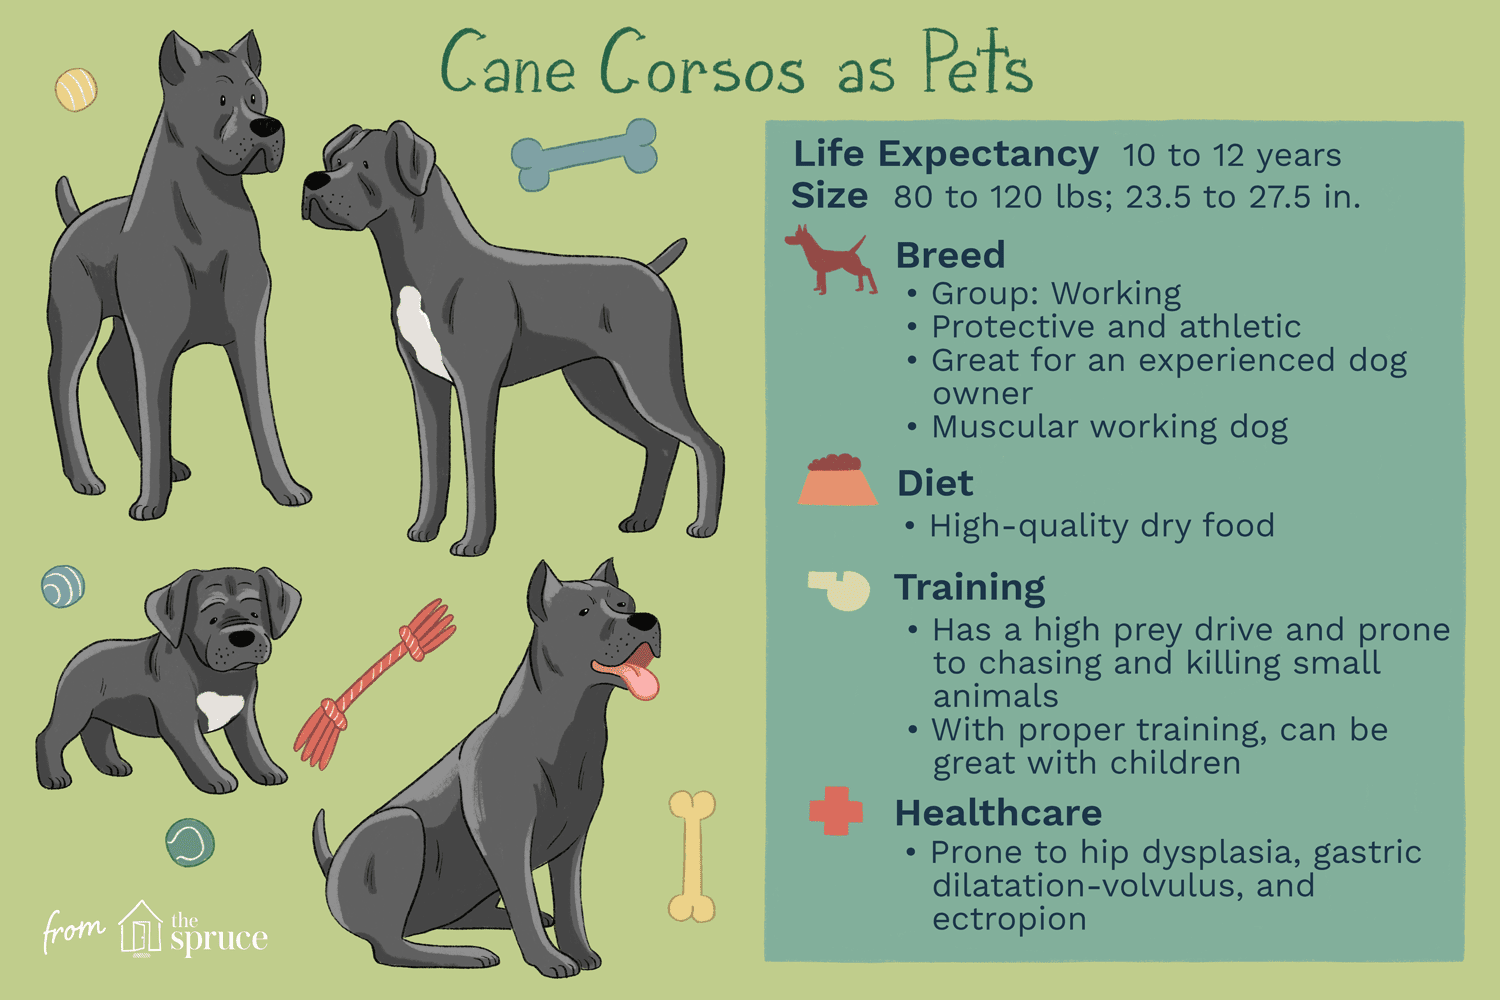 Cane Corso Full Profile History And Care